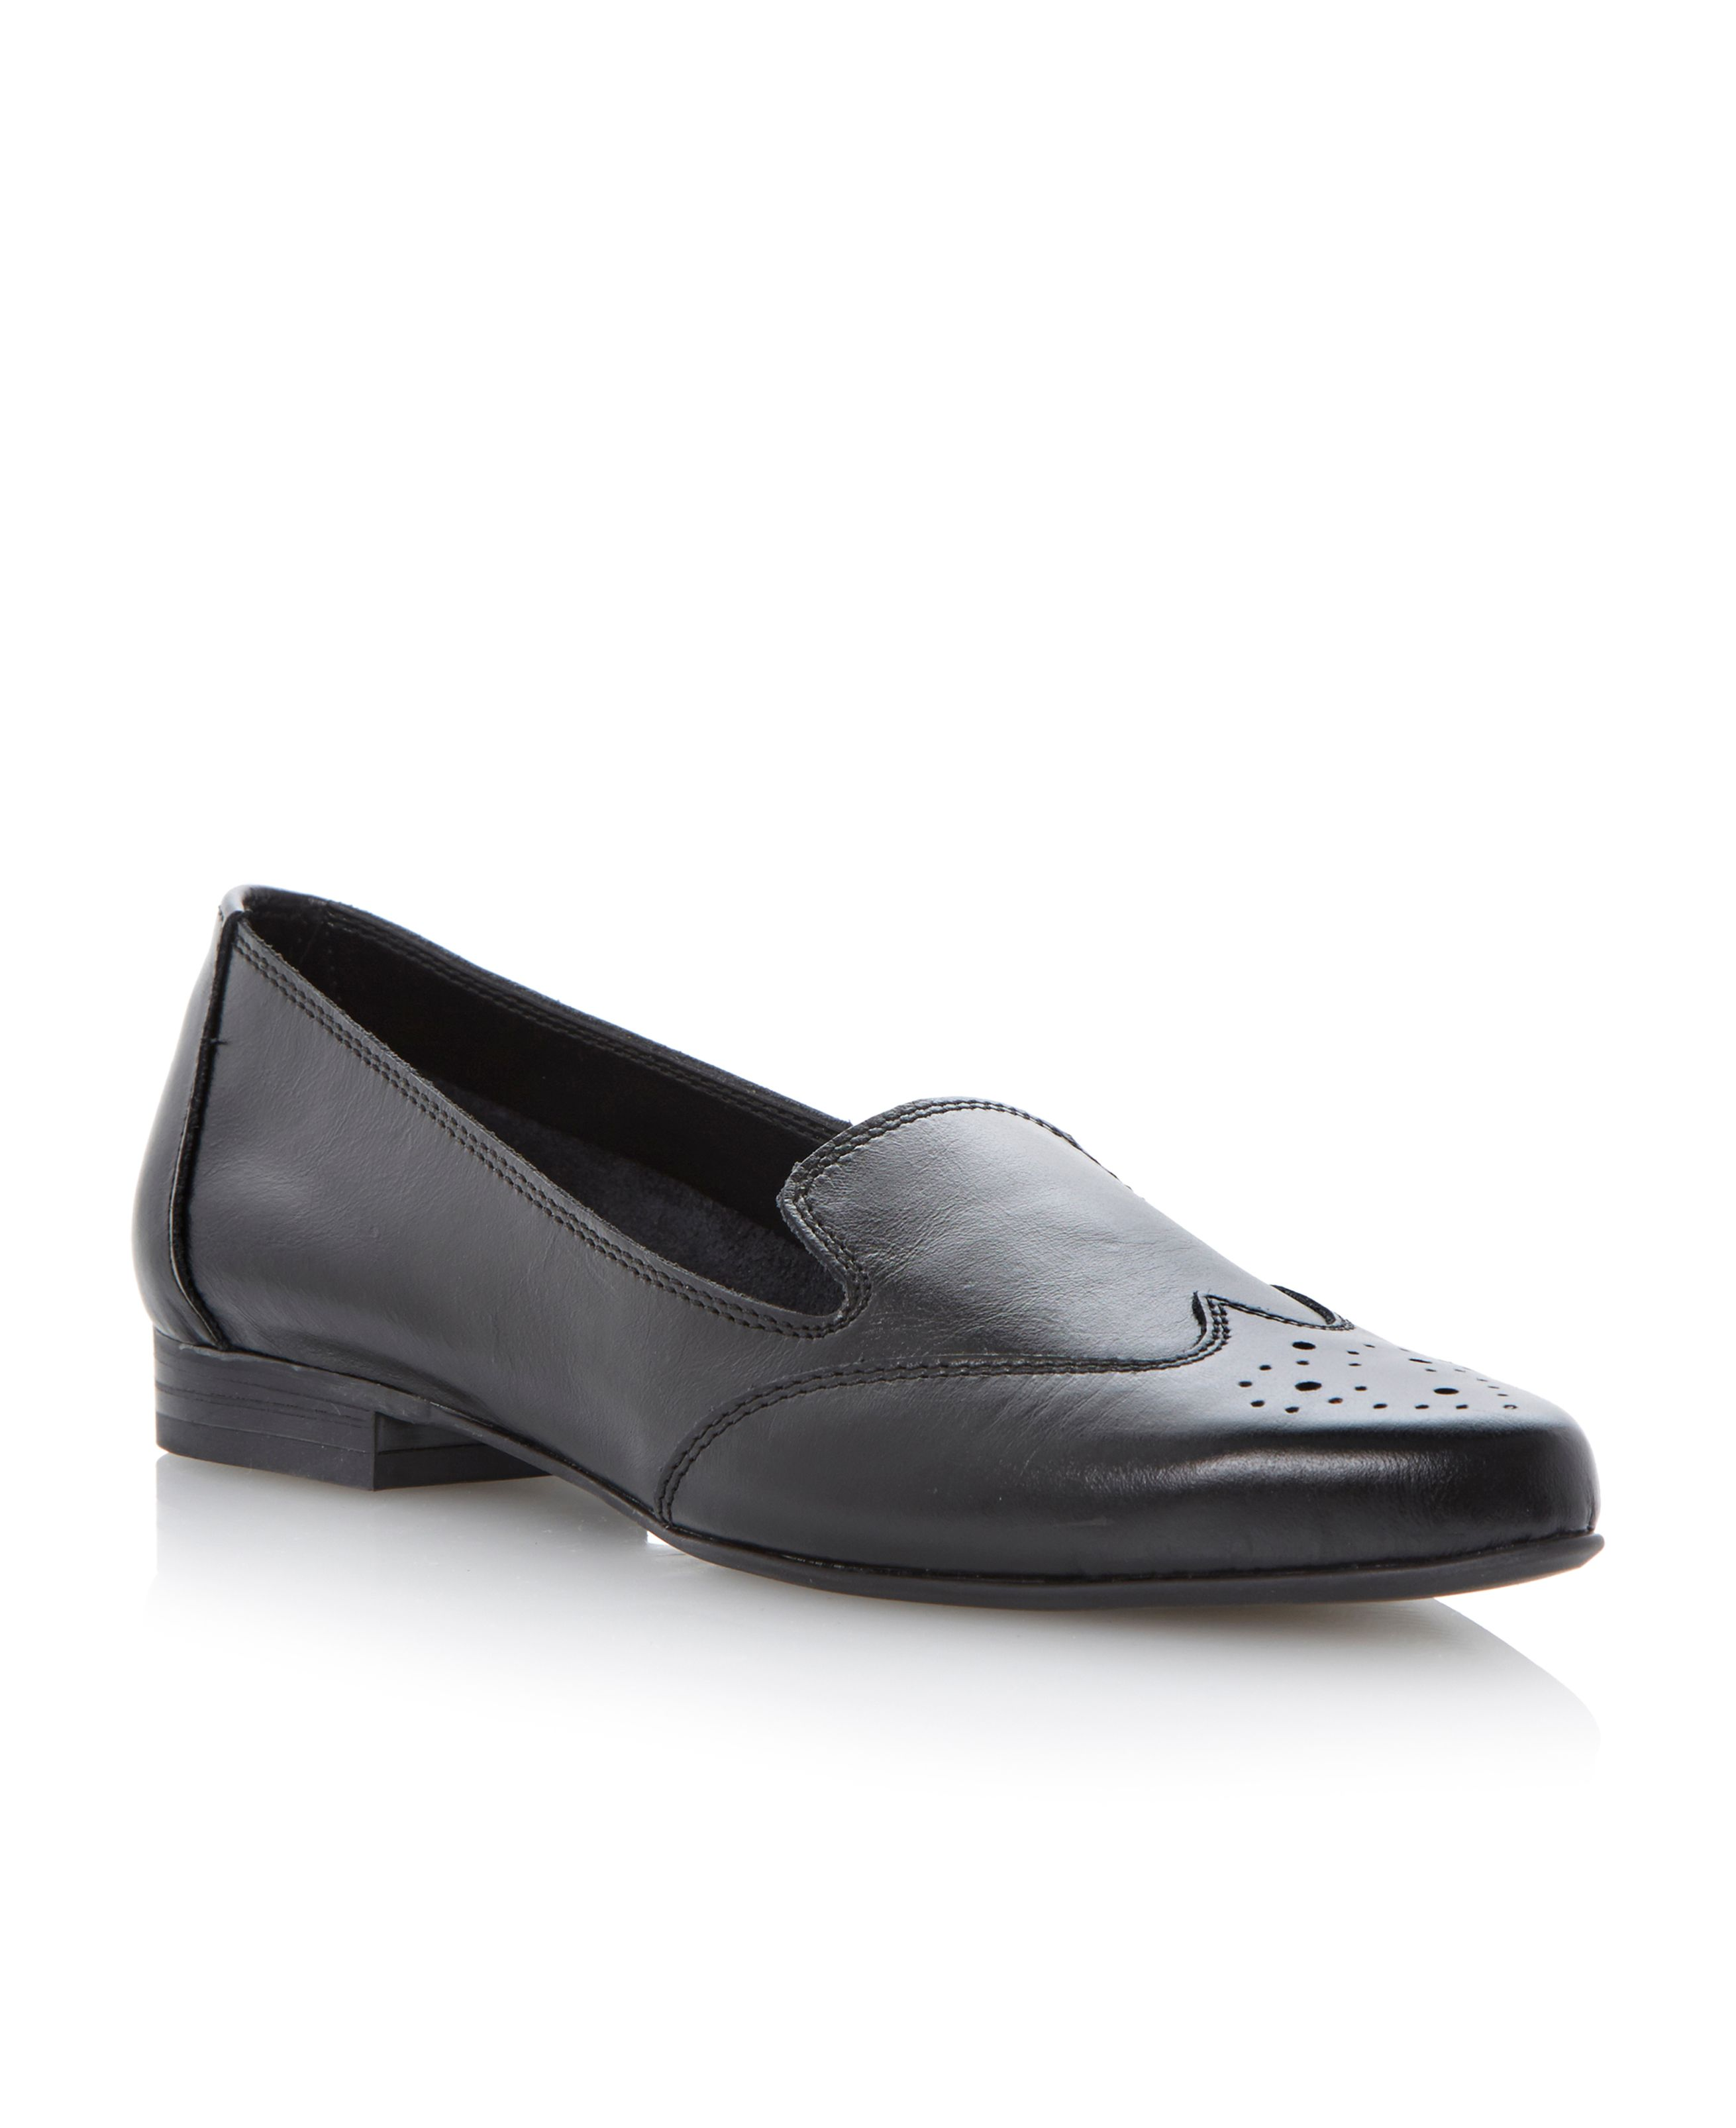 Dune Leeroy leather brogue detail loafer shoes Black Leather - House of Fraser